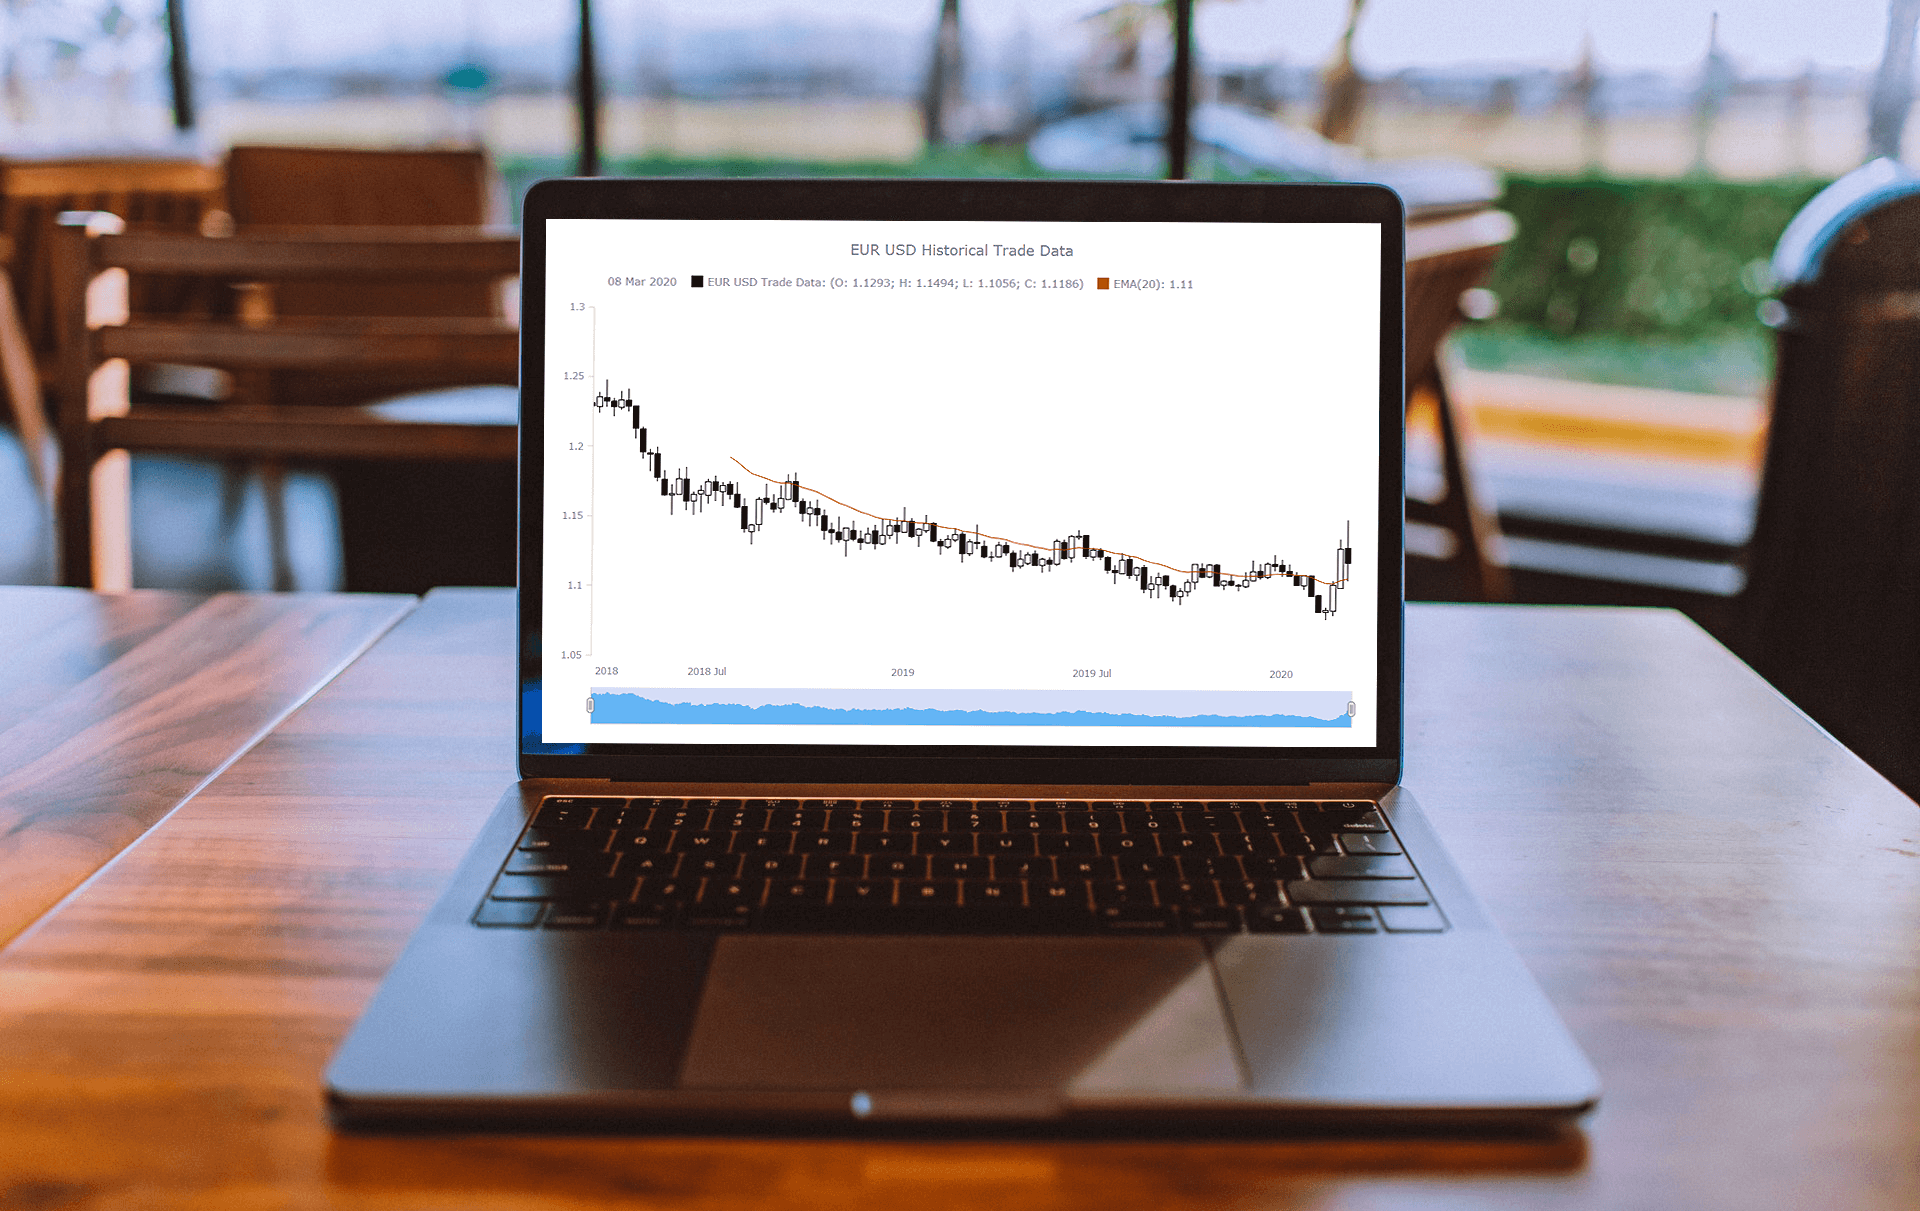 A JS Candlestick Chart on the screen of a laptop